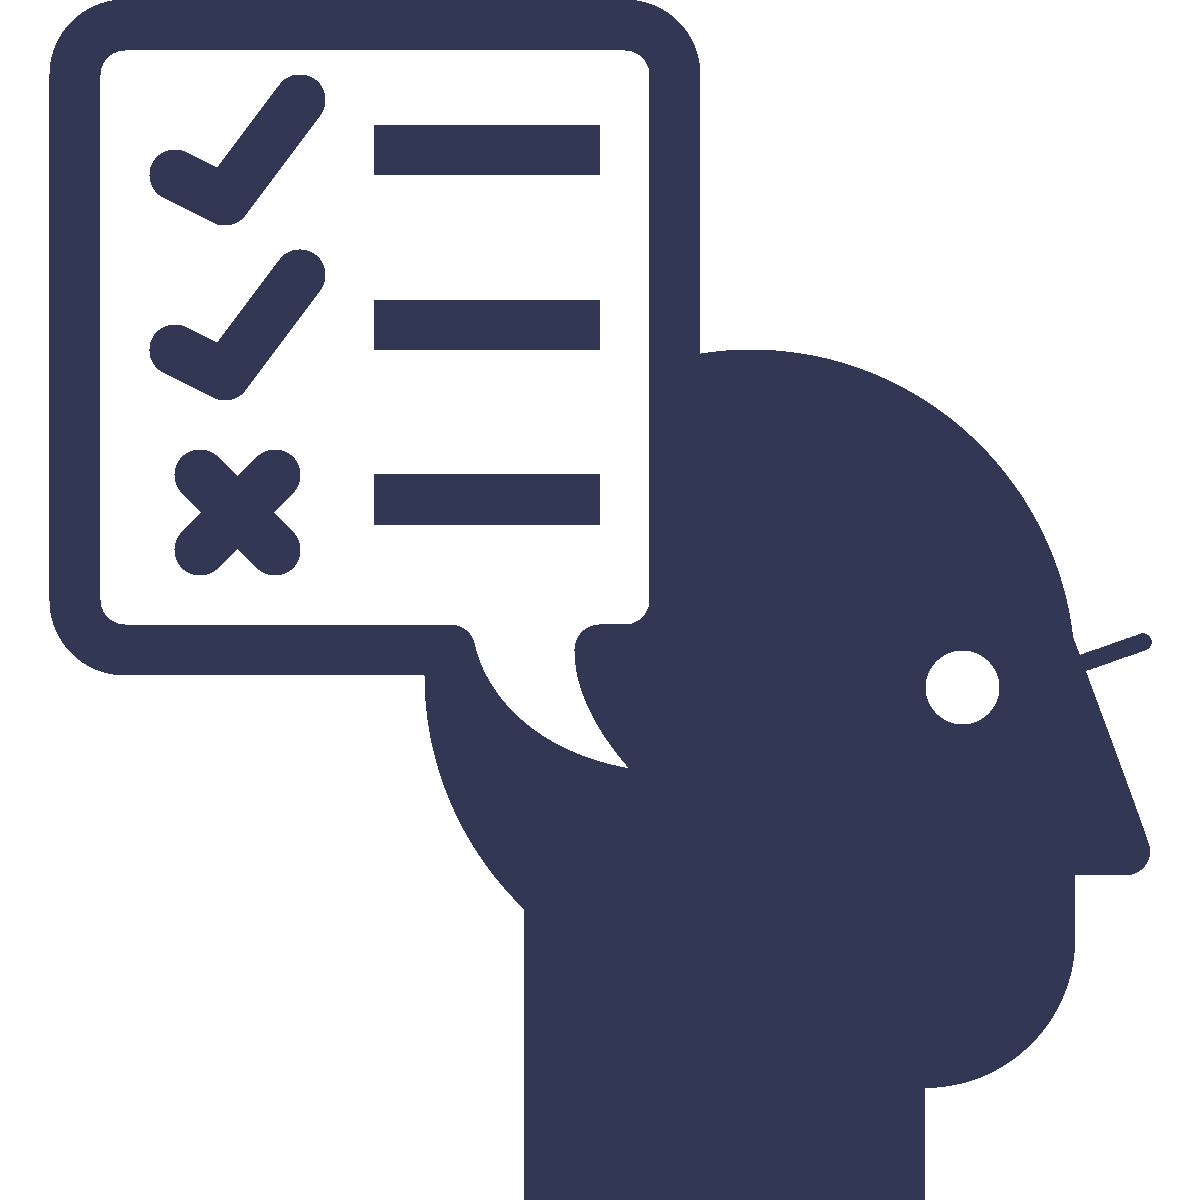 Man with a check list icon